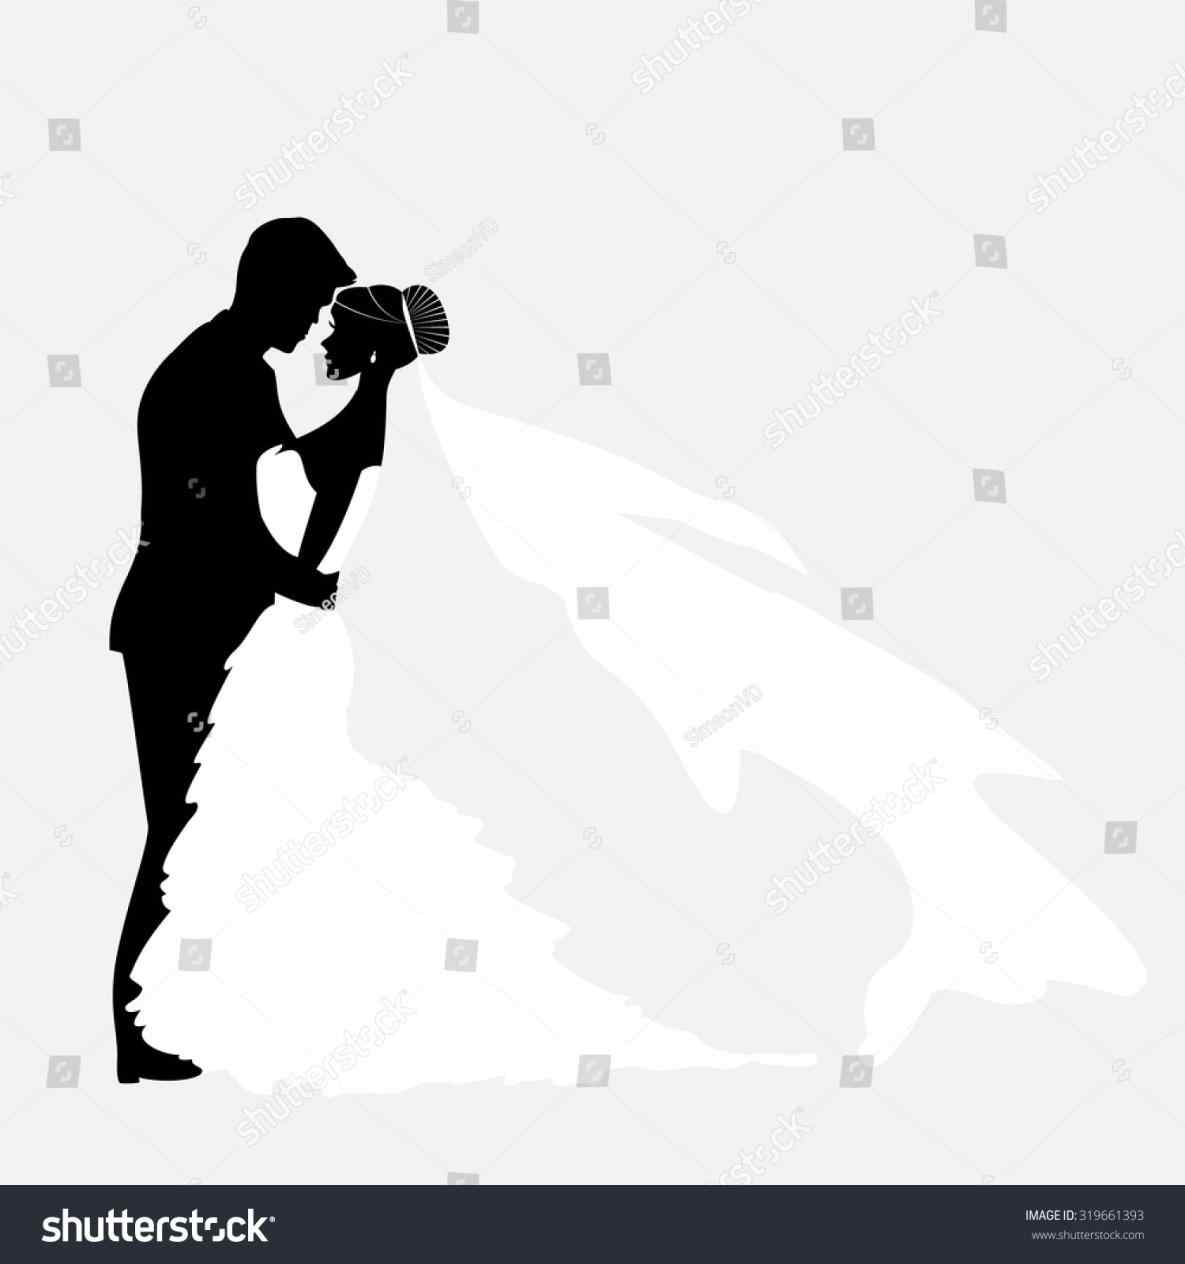 1185x1264 Bride And Groom Silhouette Clipart Black And White